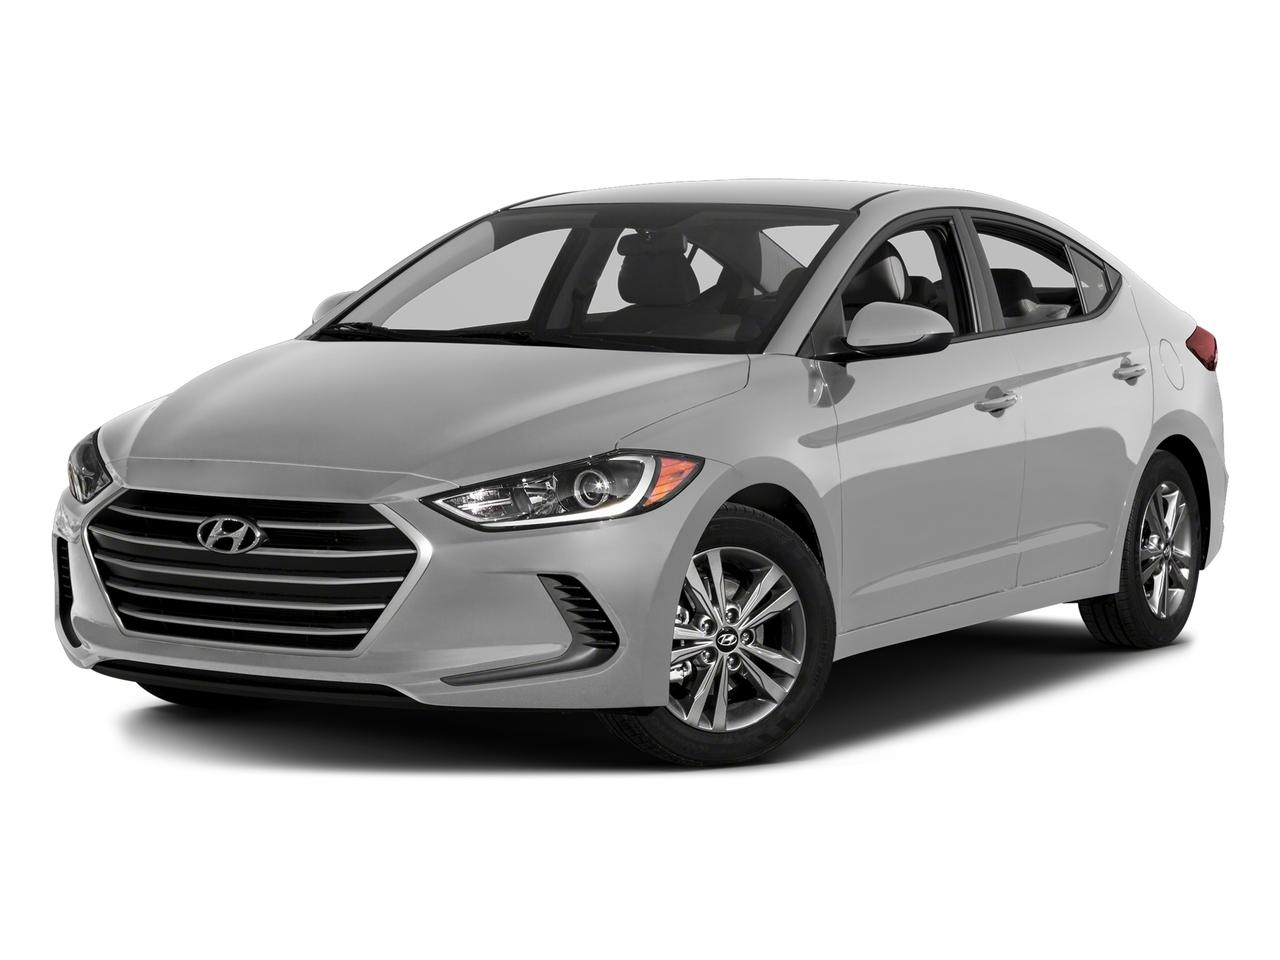 2018 Hyundai Elantra Vehicle Photo in Danbury, CT 06810